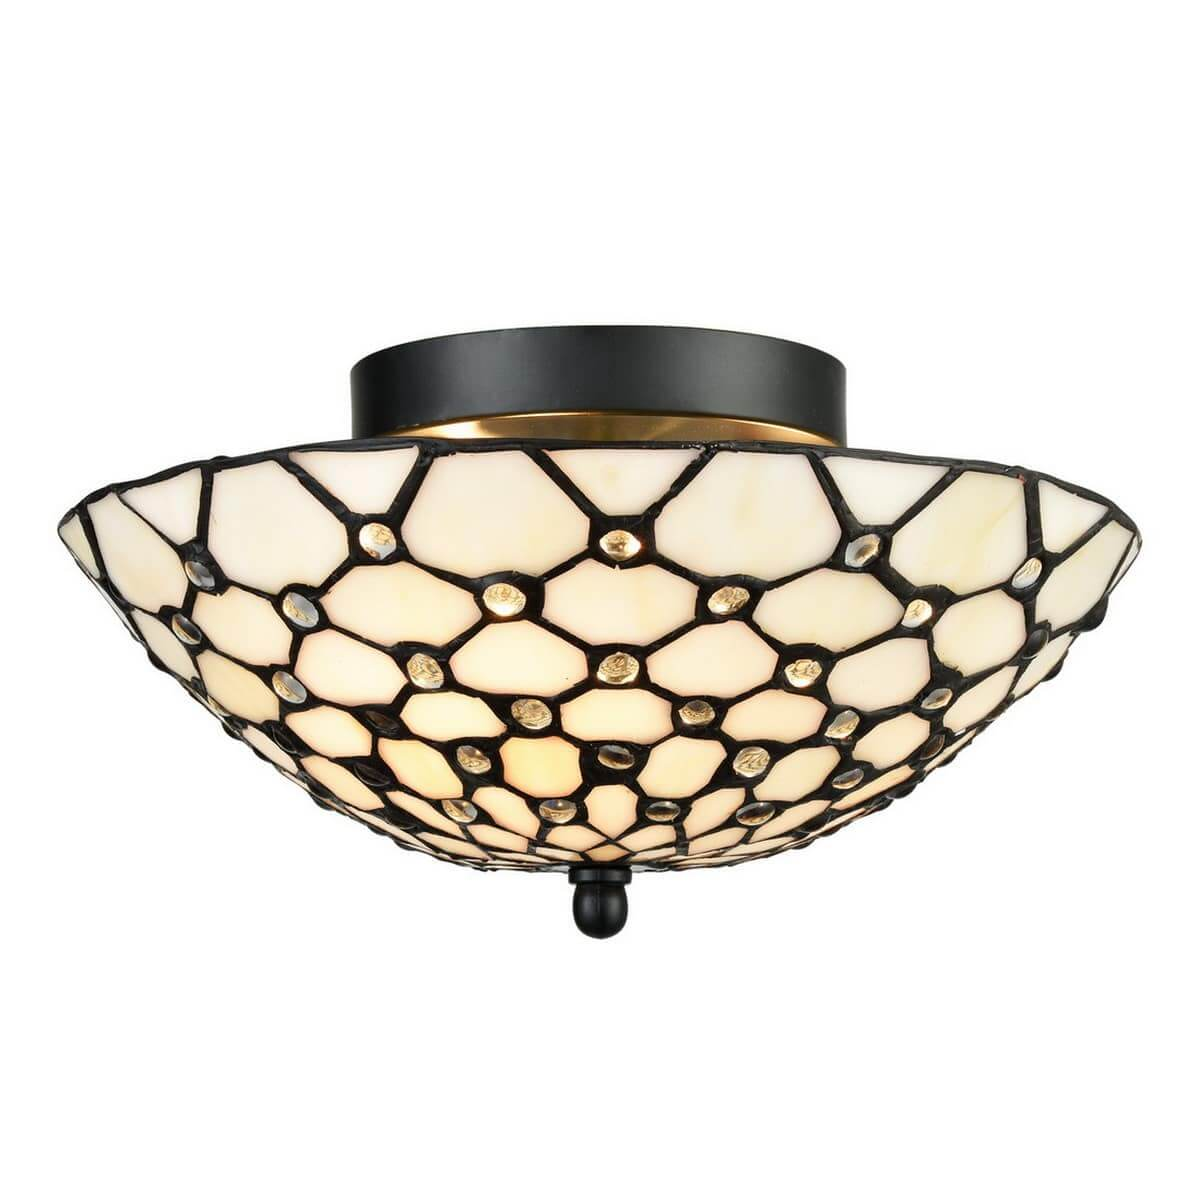 Tiffany Stained Glass Semi Flush Ceiling Light Antique Brass Shade